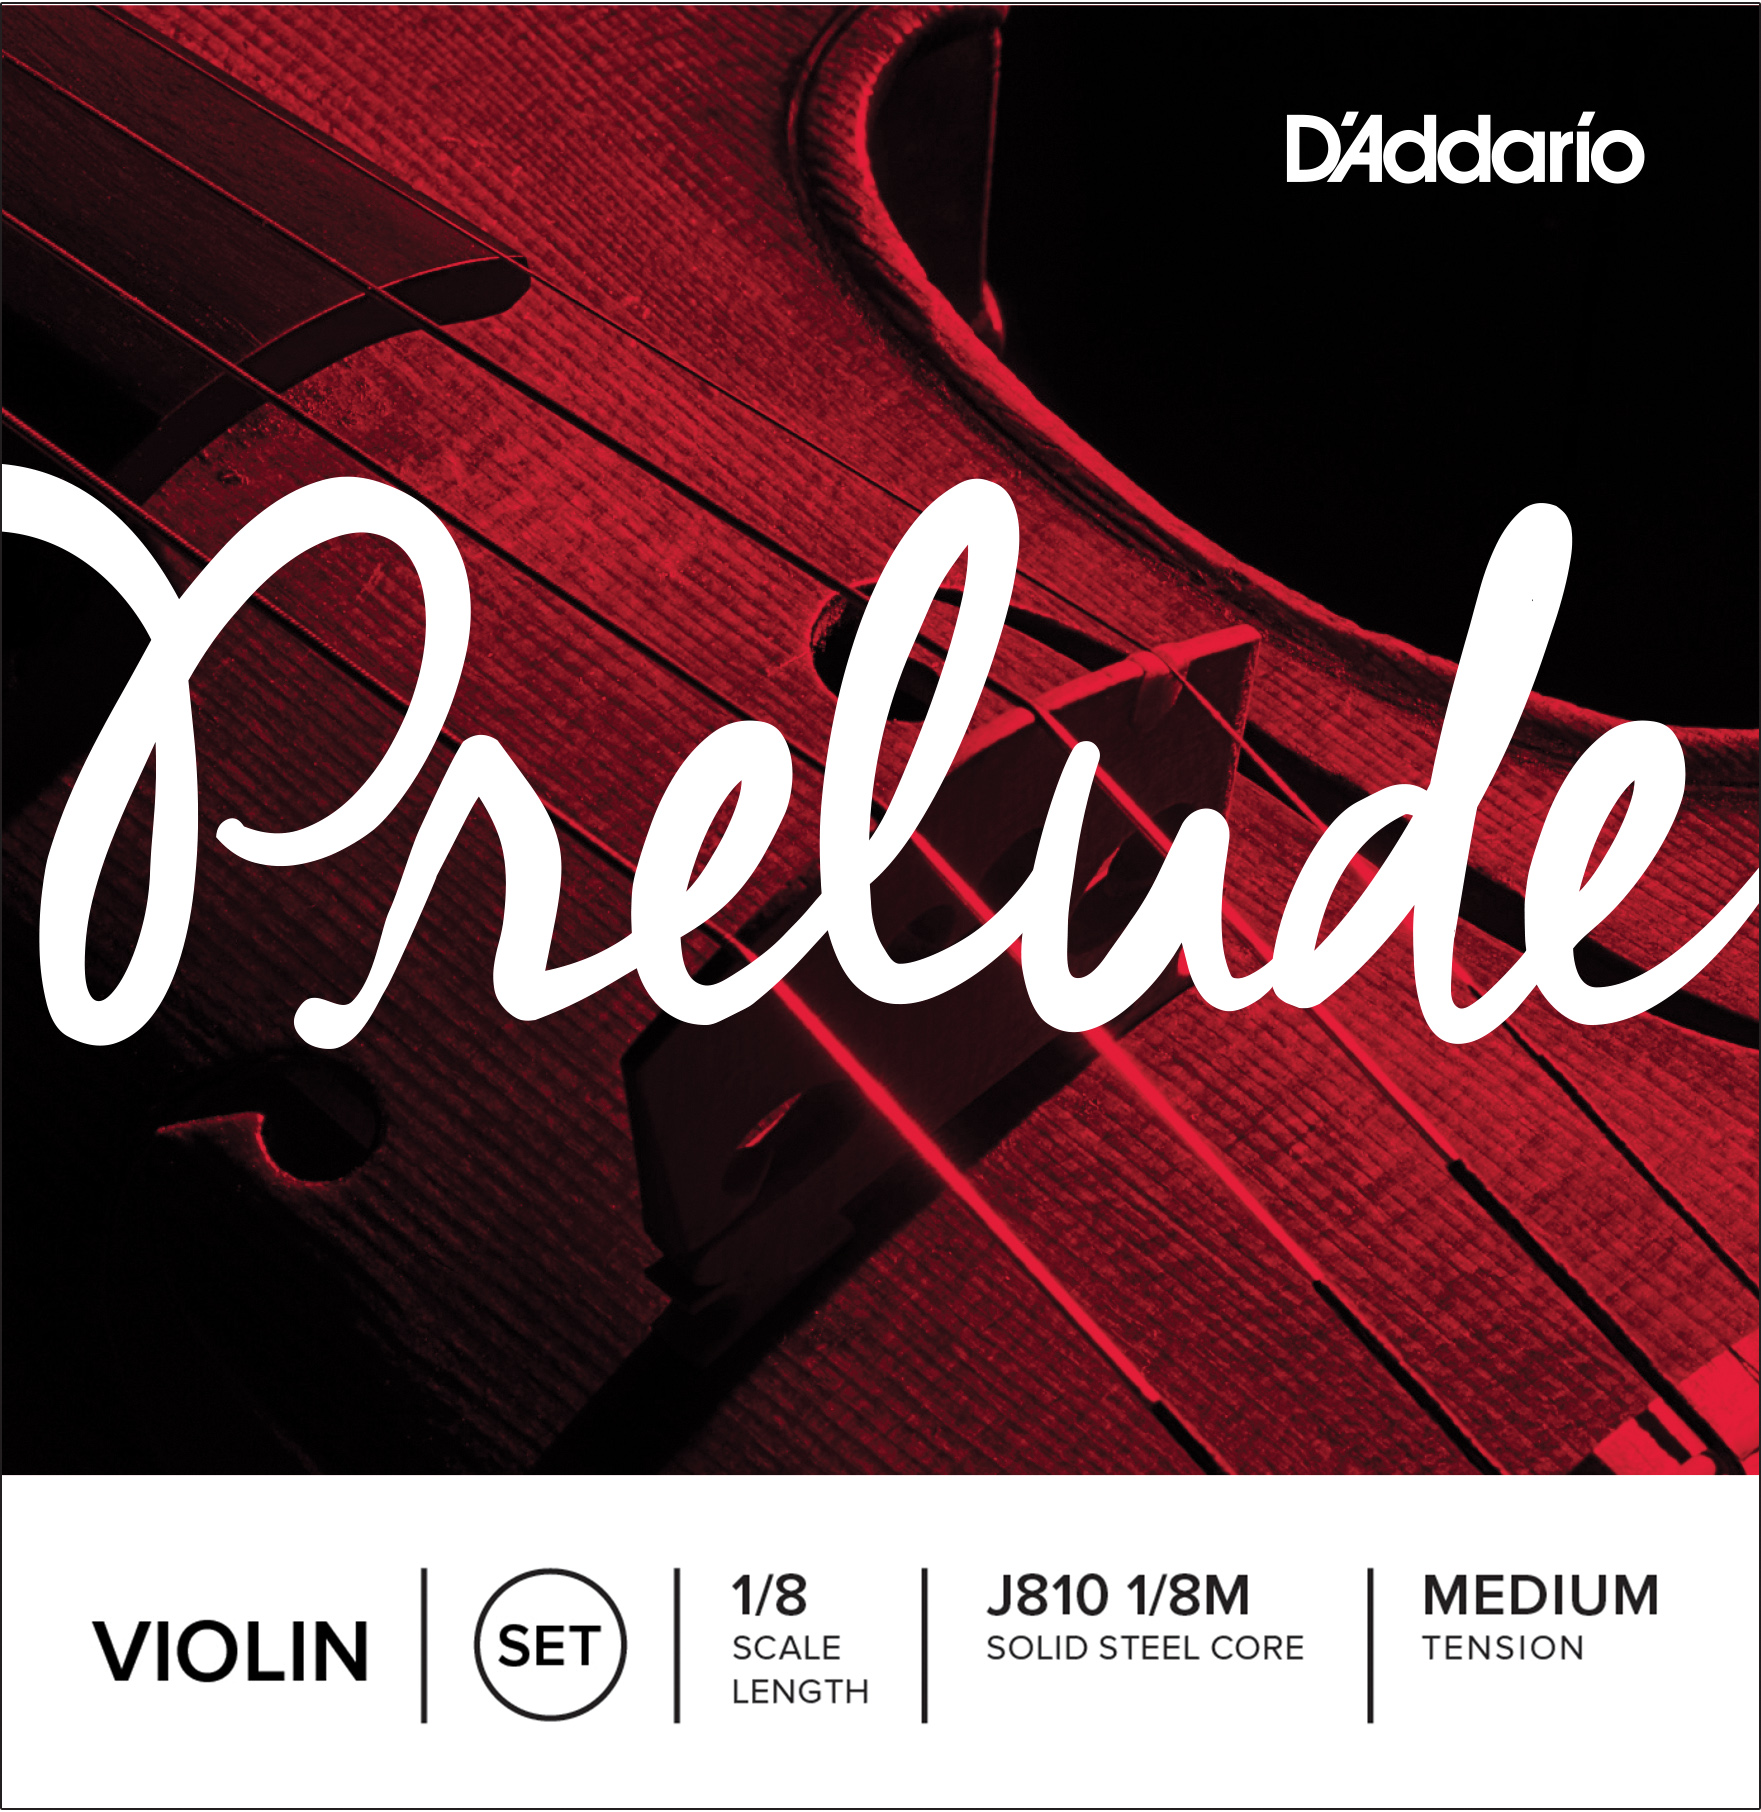 D'Addario Prelude Violin String Set 1/8 Scale Medium Tension